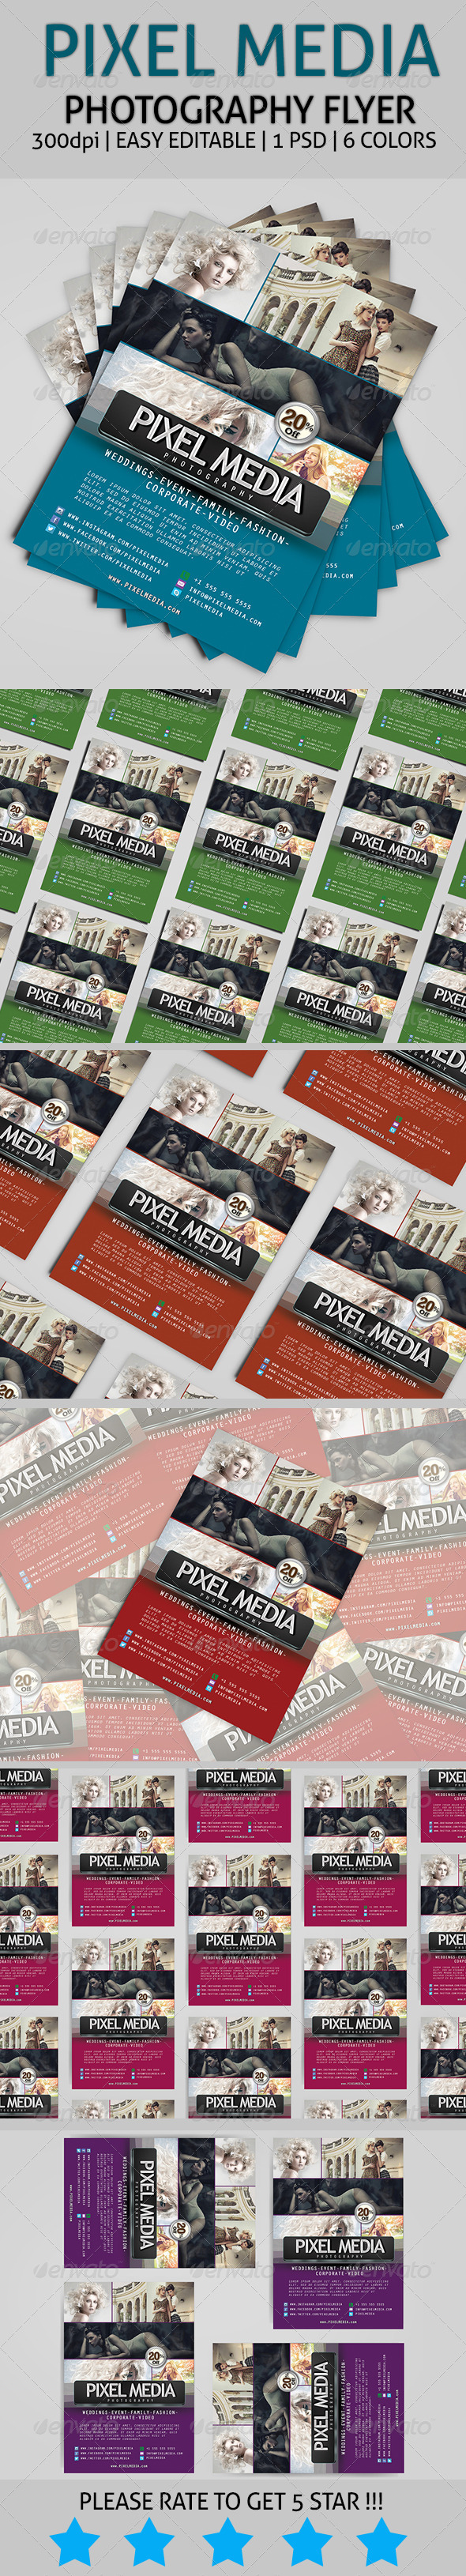 GraphicRiver Pixel Media Photography Flyer 7512653